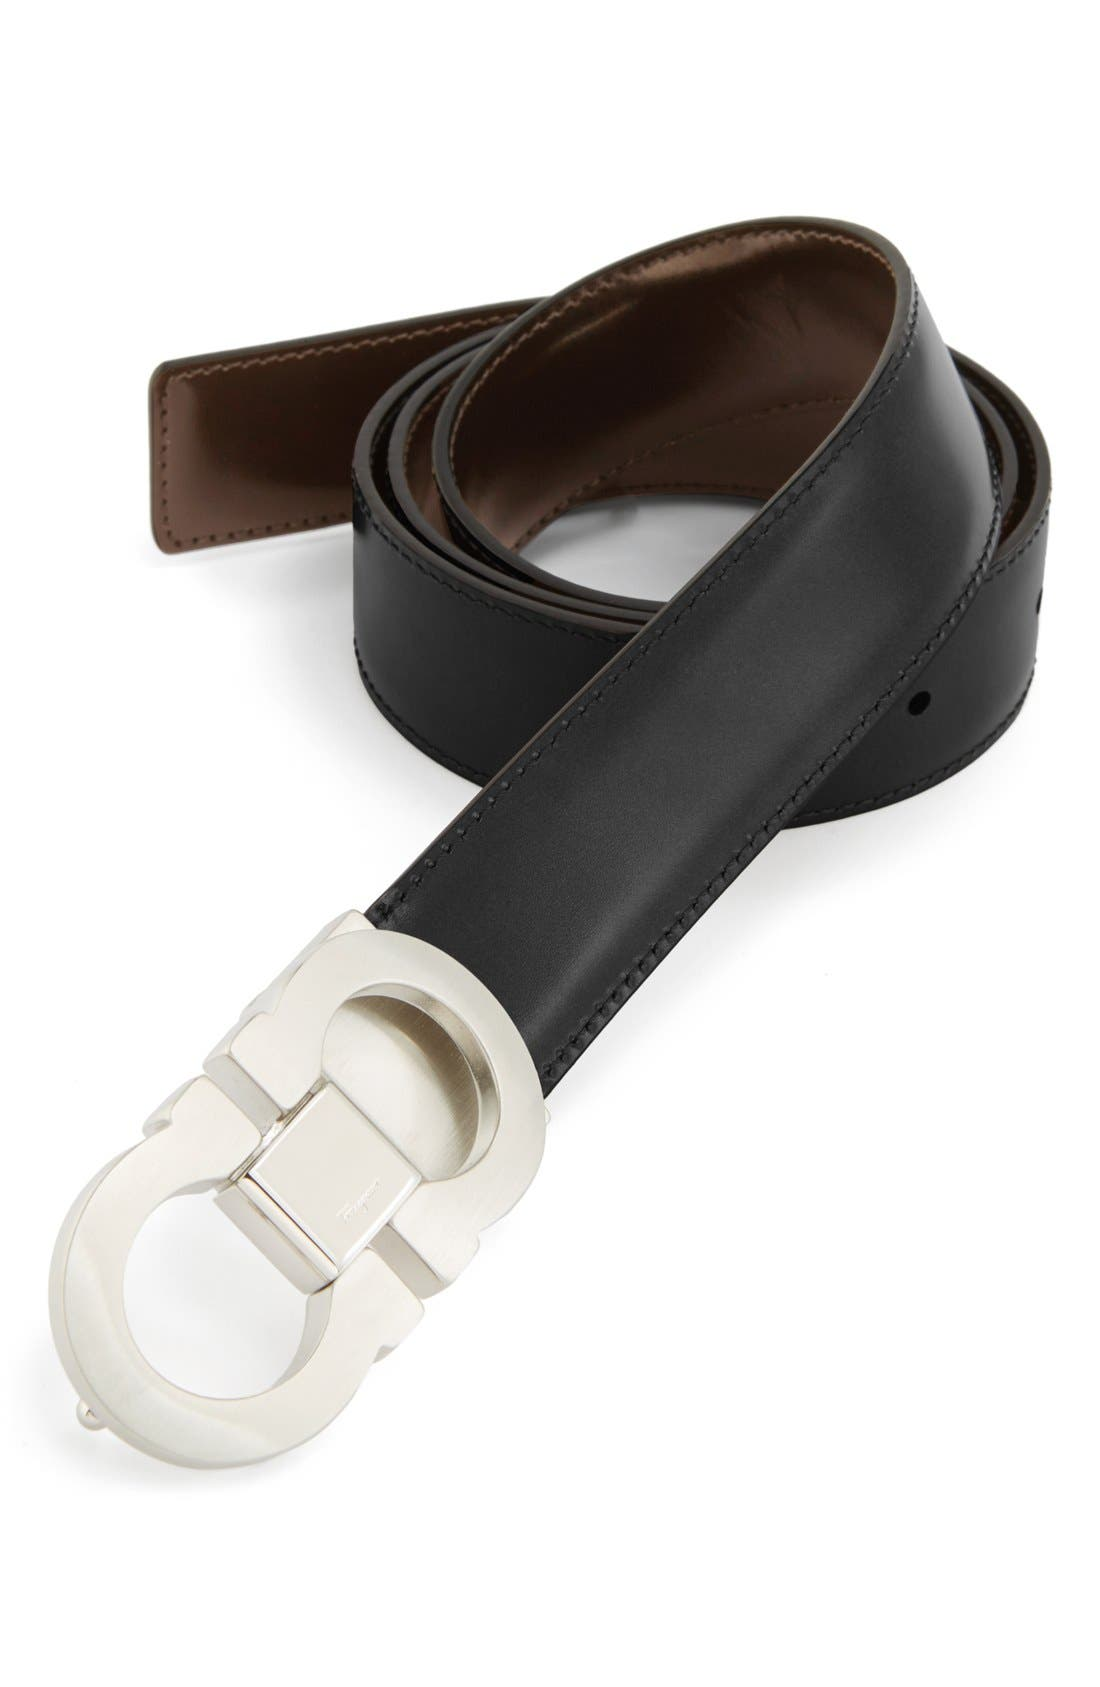 Alternate Image 1 Selected - Salvatore Ferragamo Double Gancio Reversible Leather Belt